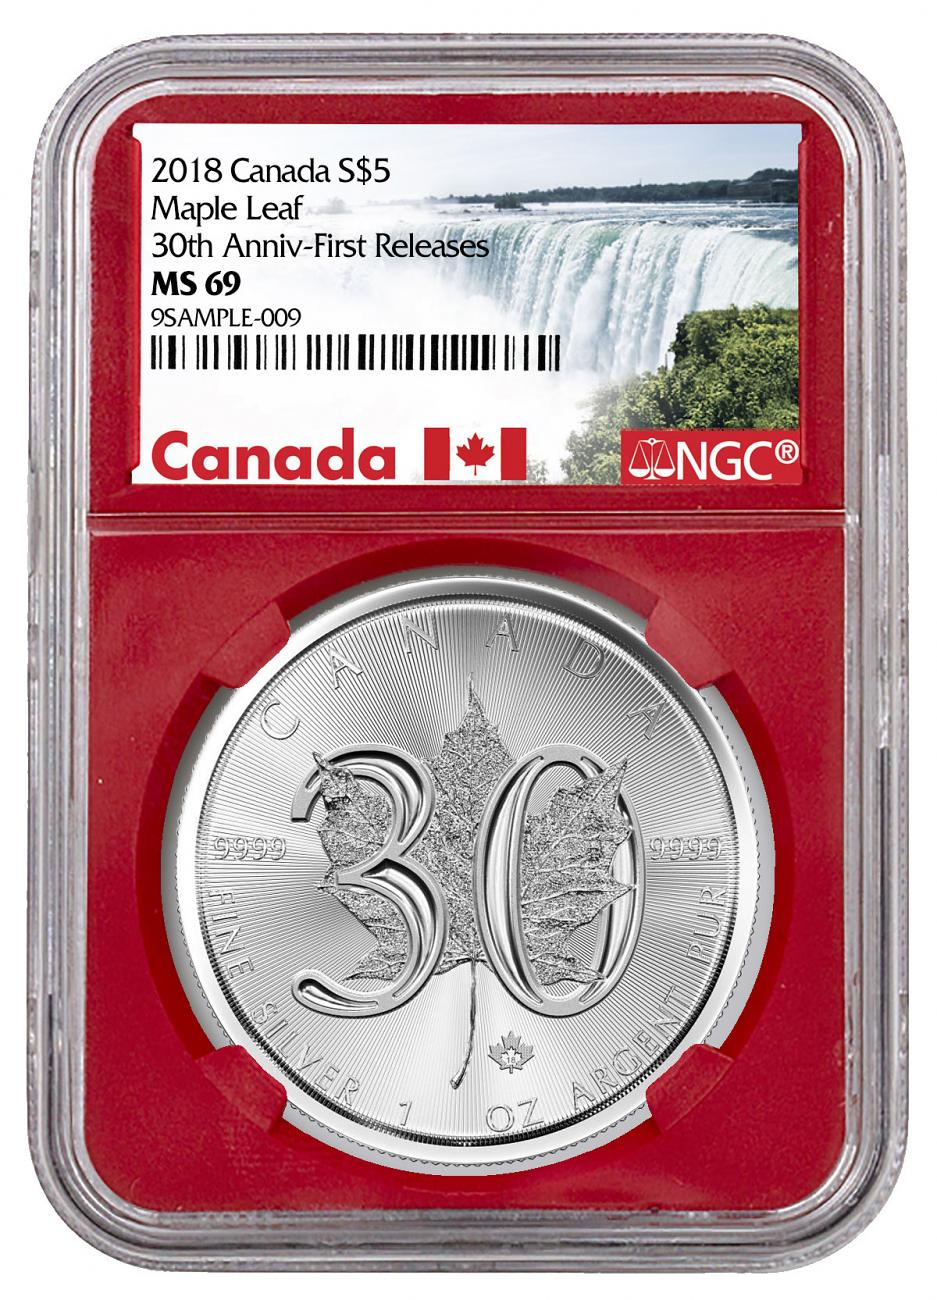 2018 Canada 1 oz Silver Maple Leaf - 30th Anniversary $5 Coin NGC MS69 FR Red Core Holder Exclusive Canada Label